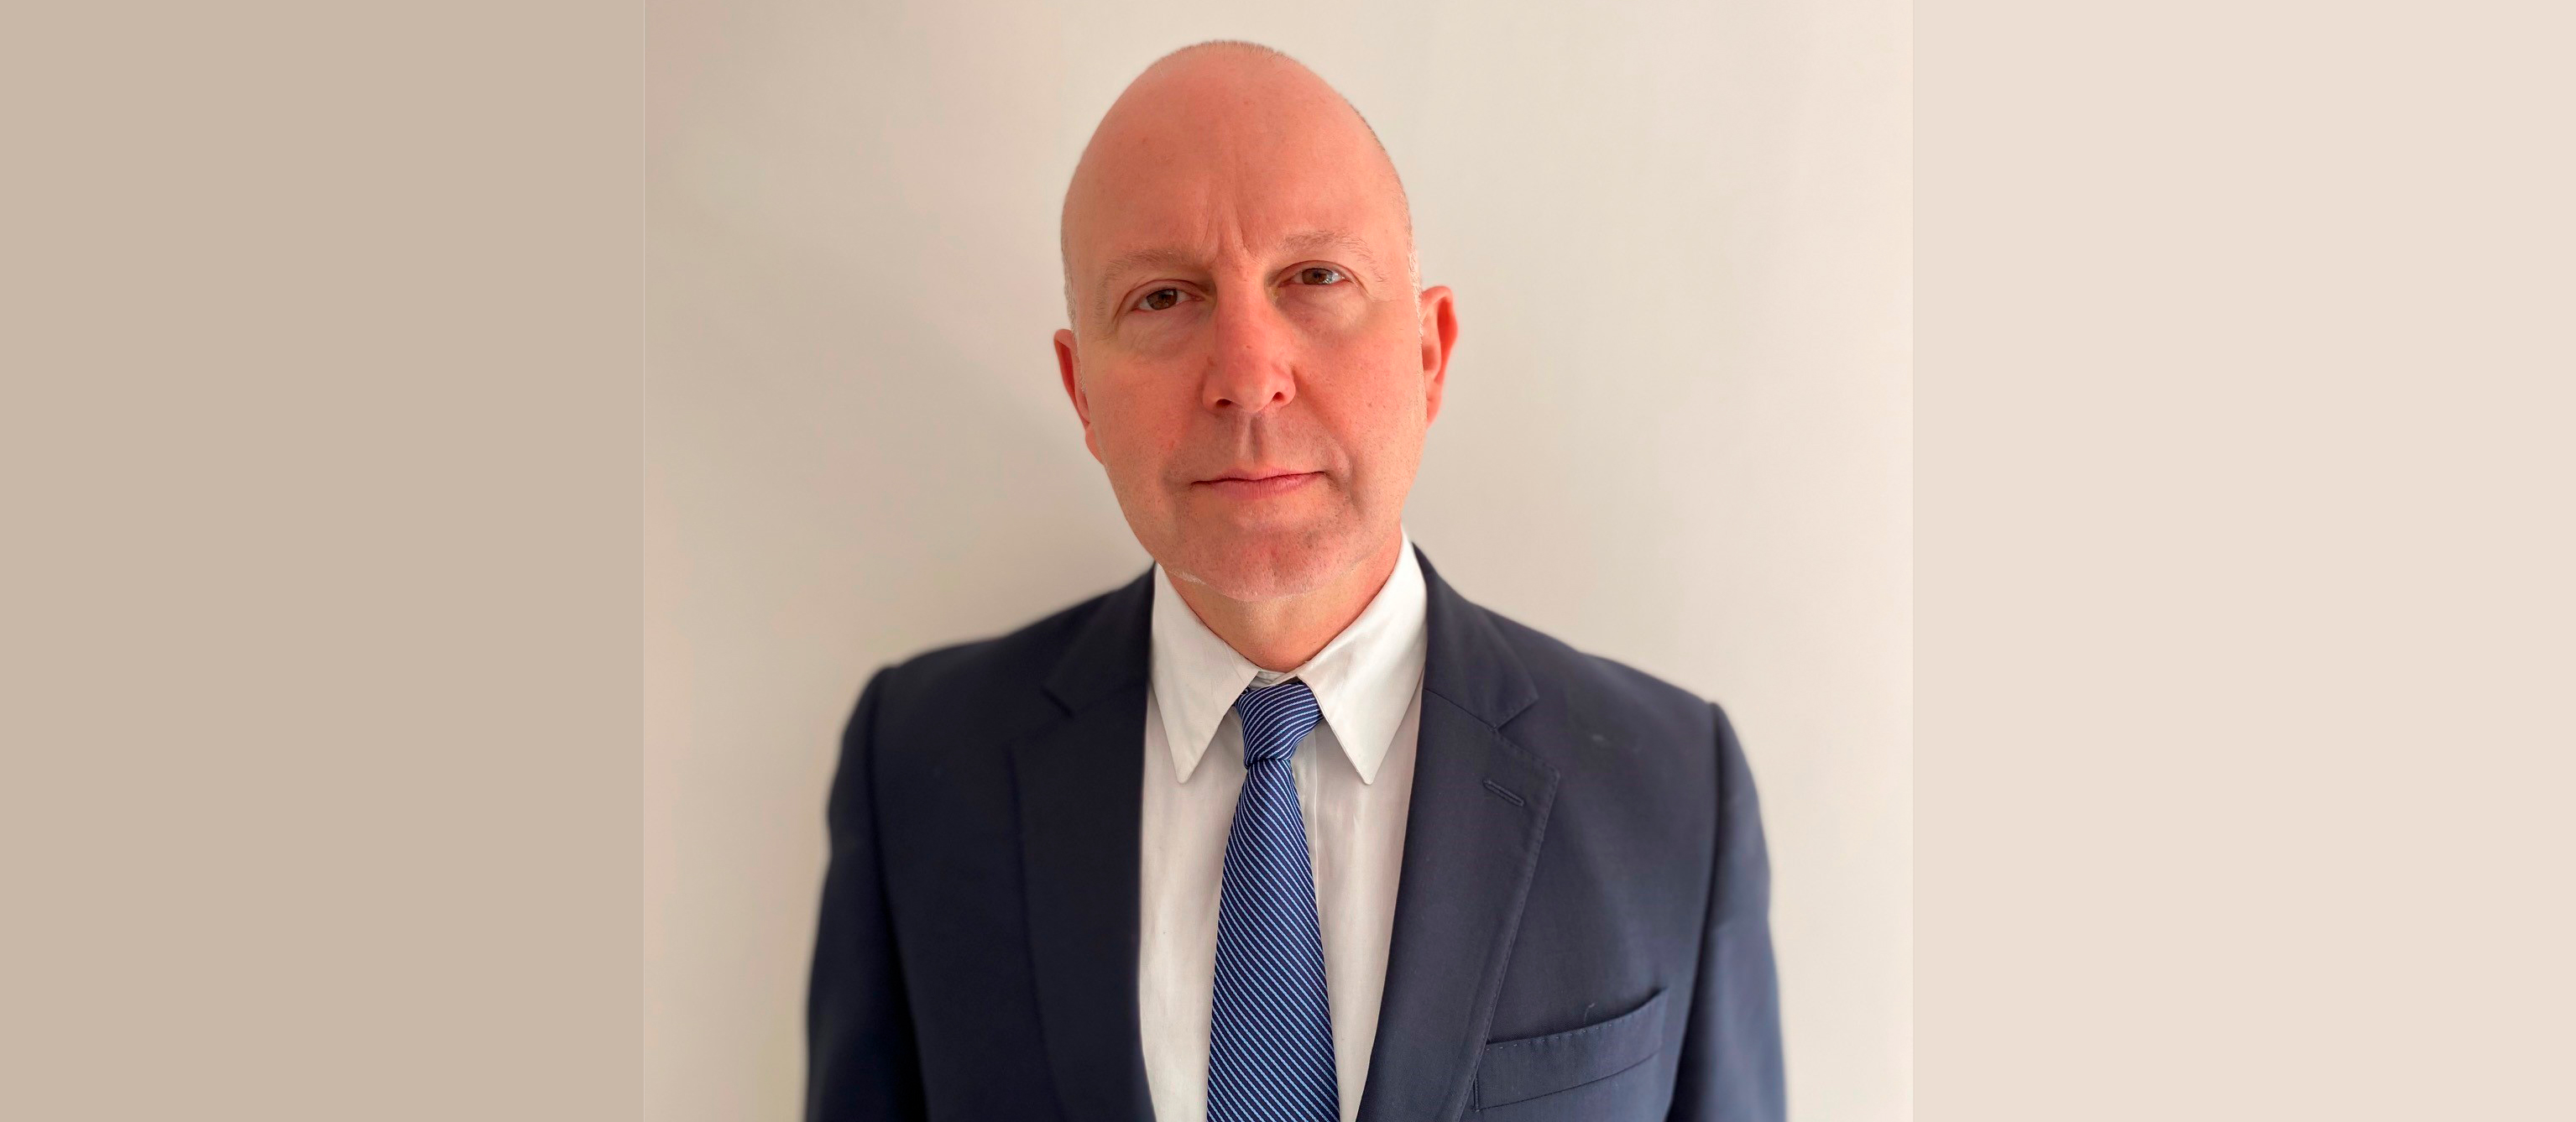 SEI Appoints Nigel Aston as Sales Director of Defined Contribution